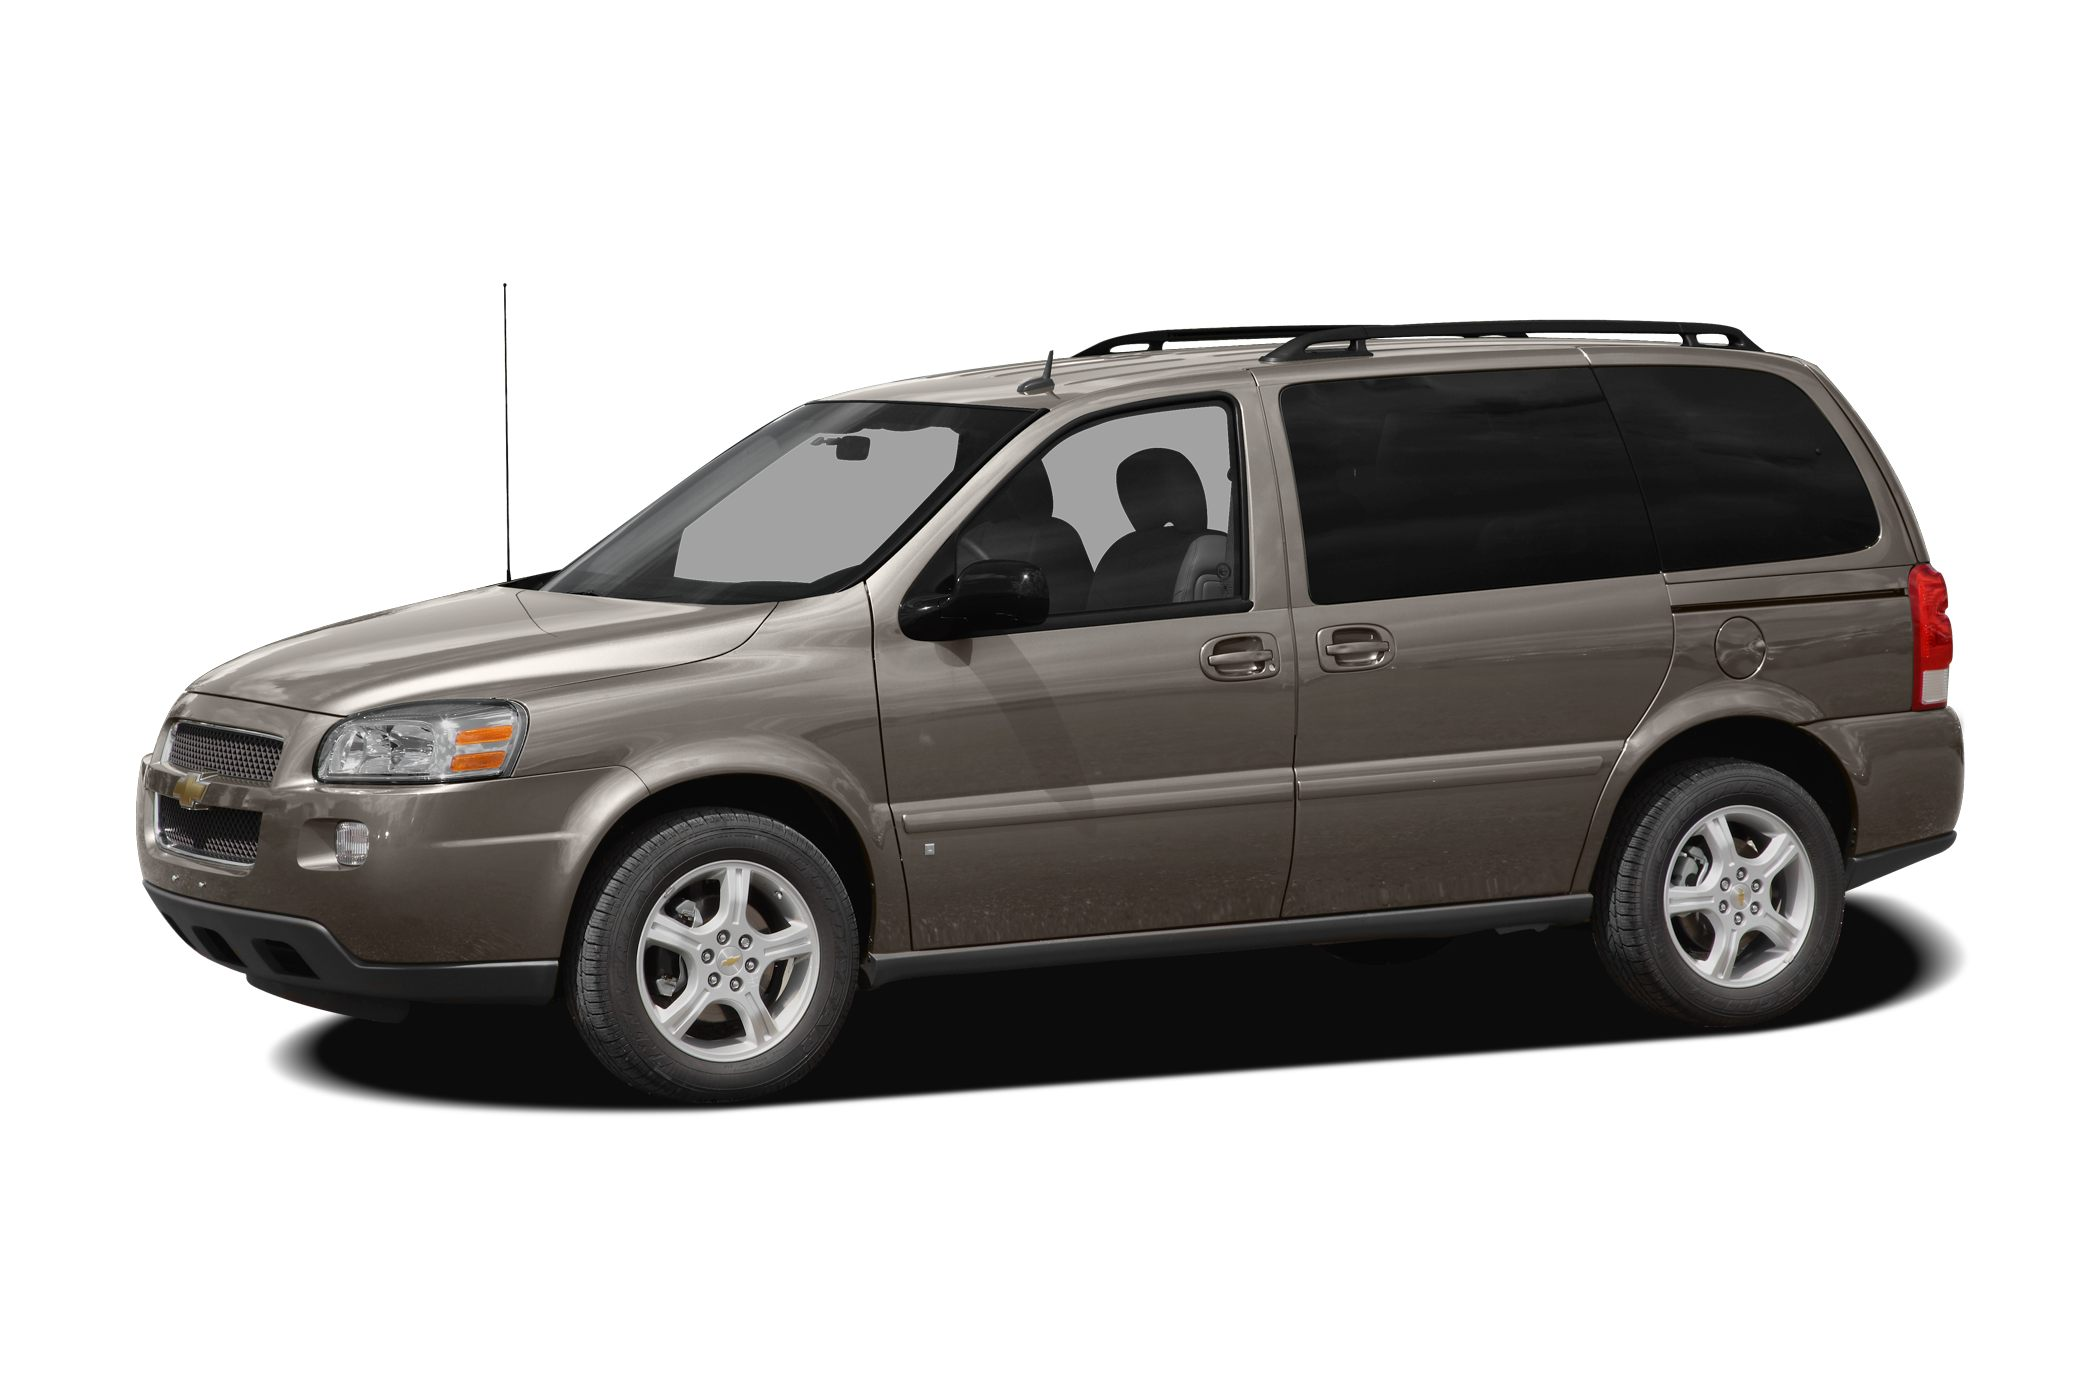 2007 Chevrolet Uplander LS Minivan for sale in Goshen for $6,878 with 116,994 miles